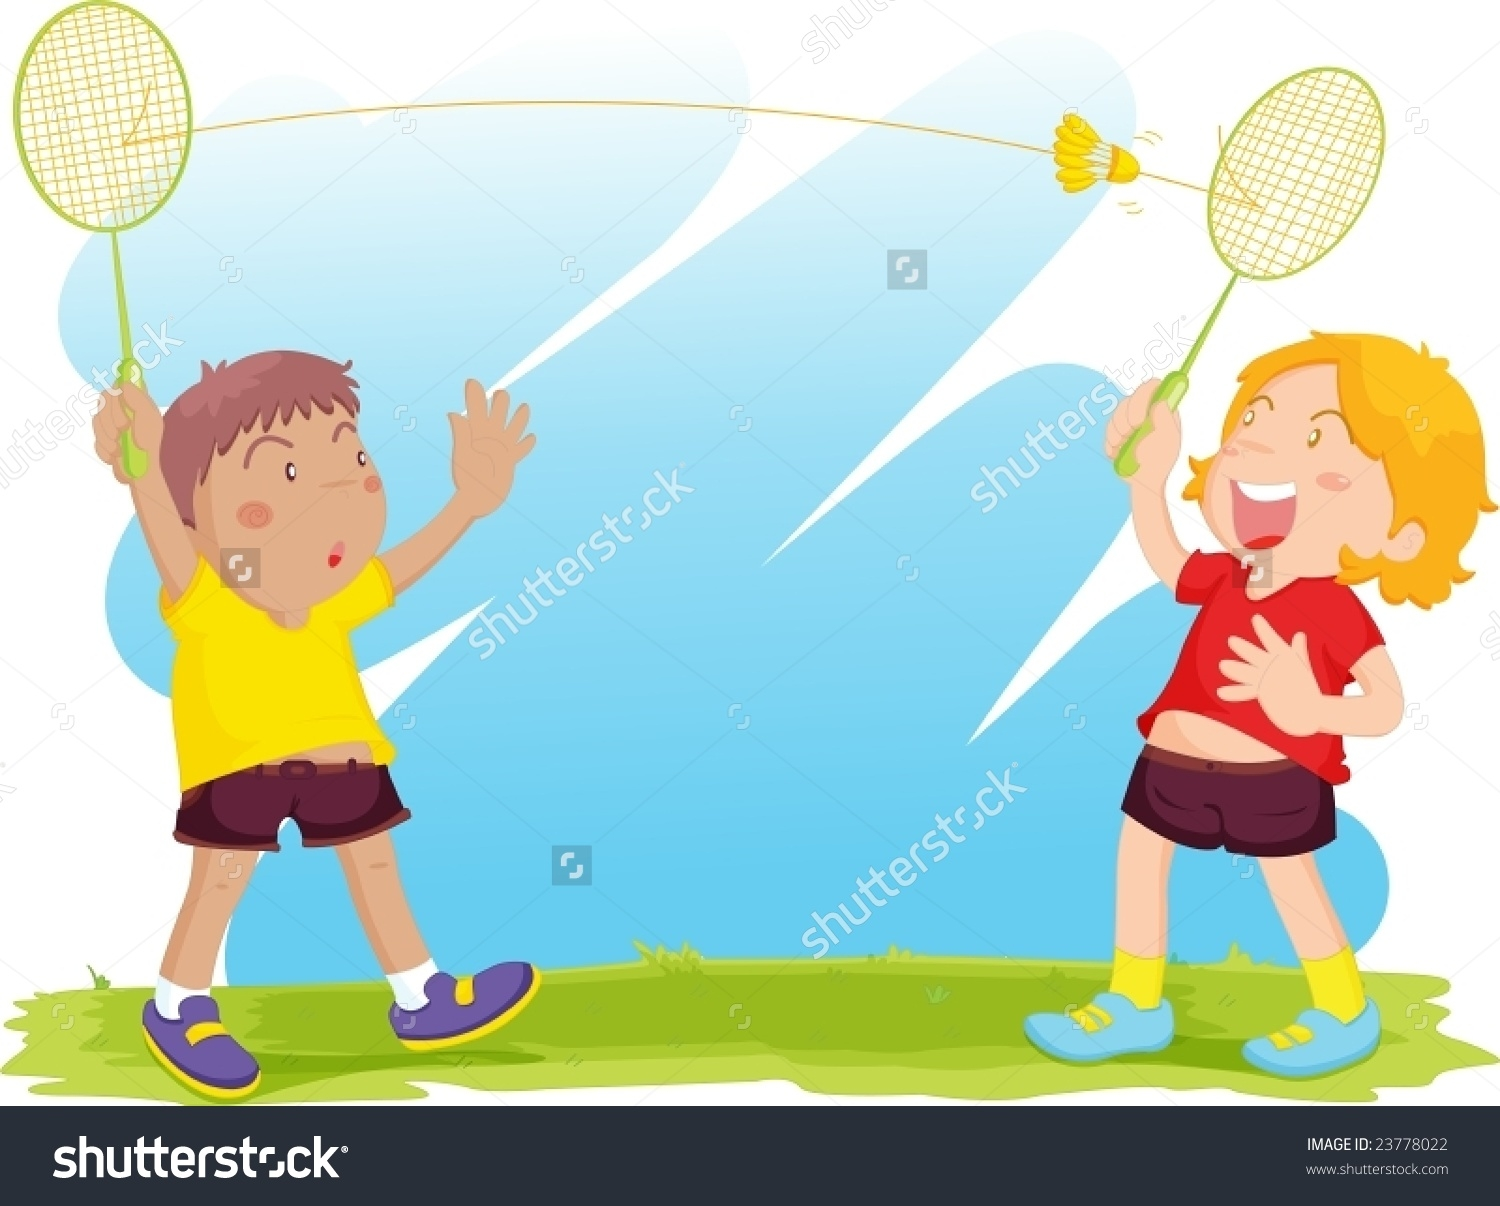 clip art transparent stock Badminton clipart kid play. Kids playing station .